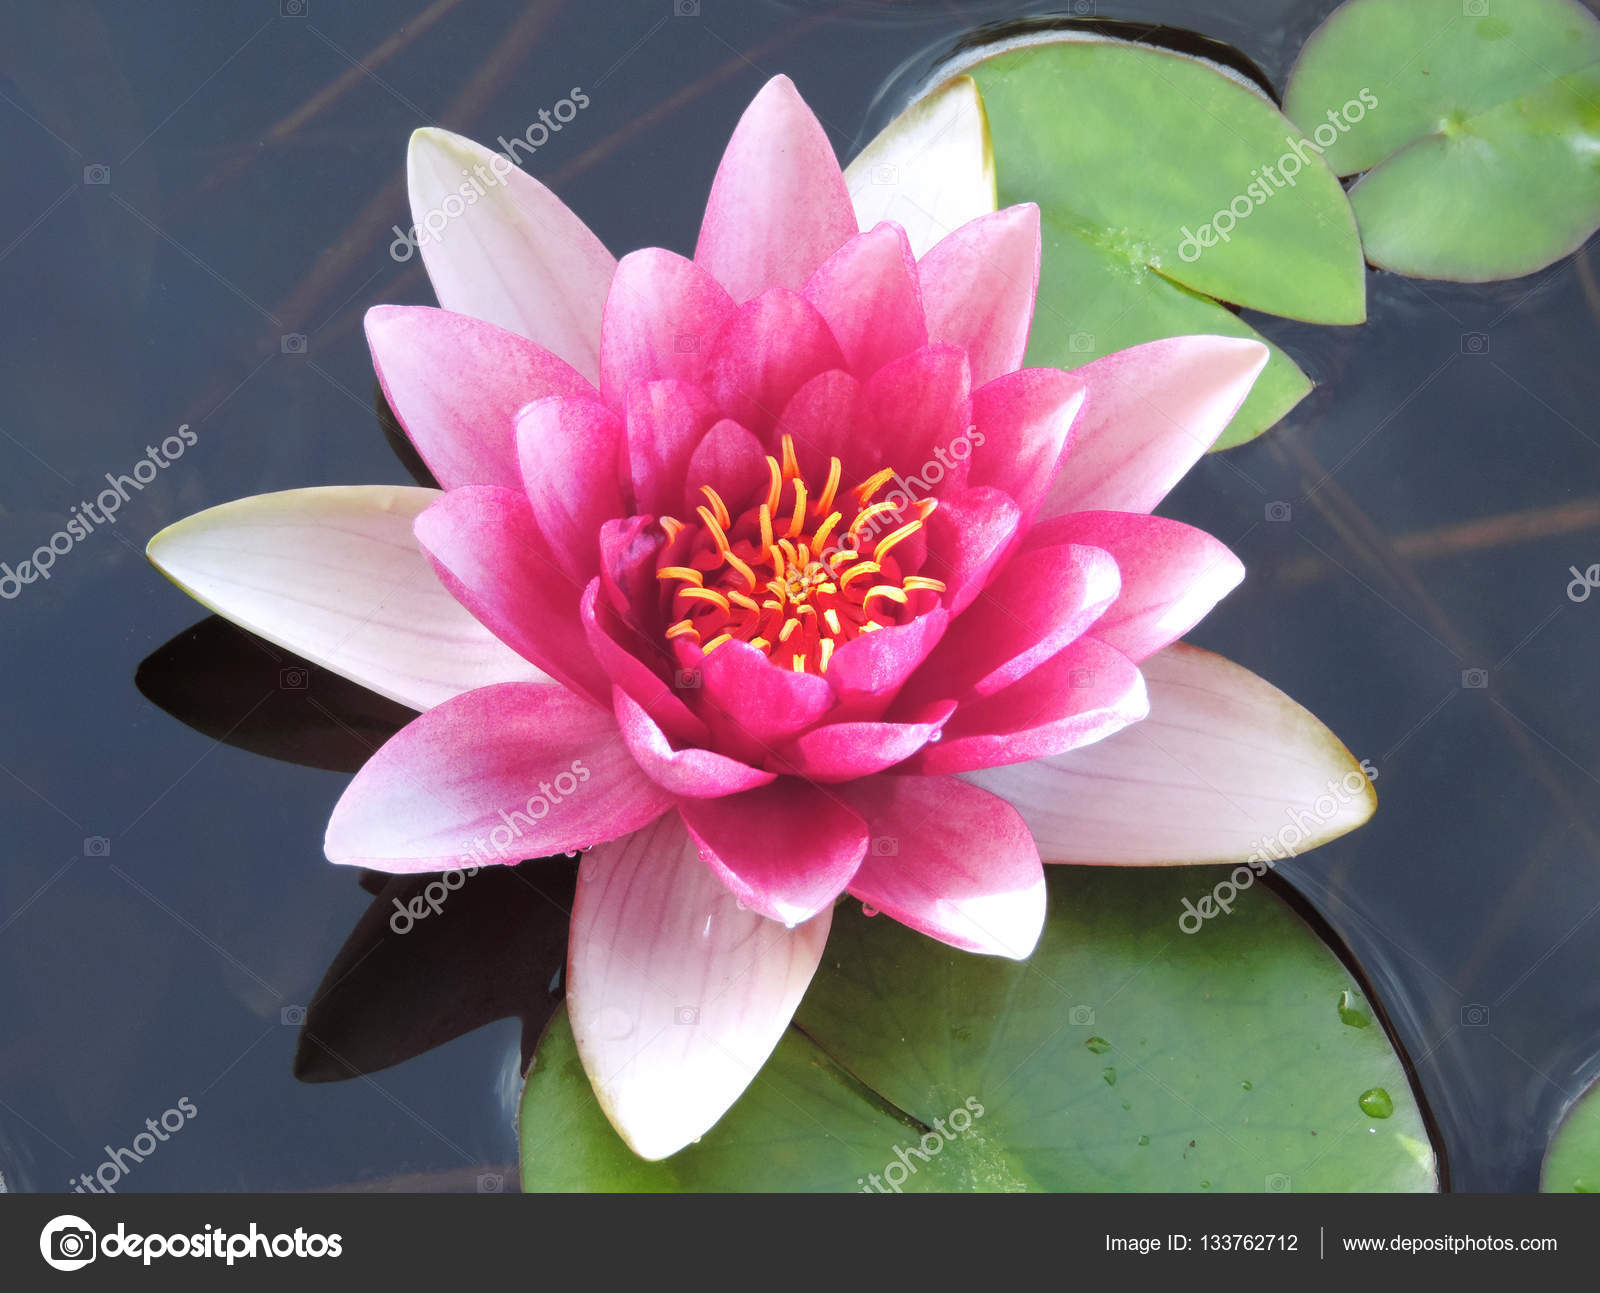 Lotus flower or water lily stock photo eivaisla 133762712 pink colored lotus flower or water lily on a pond close up shot photo by eivaisla mightylinksfo